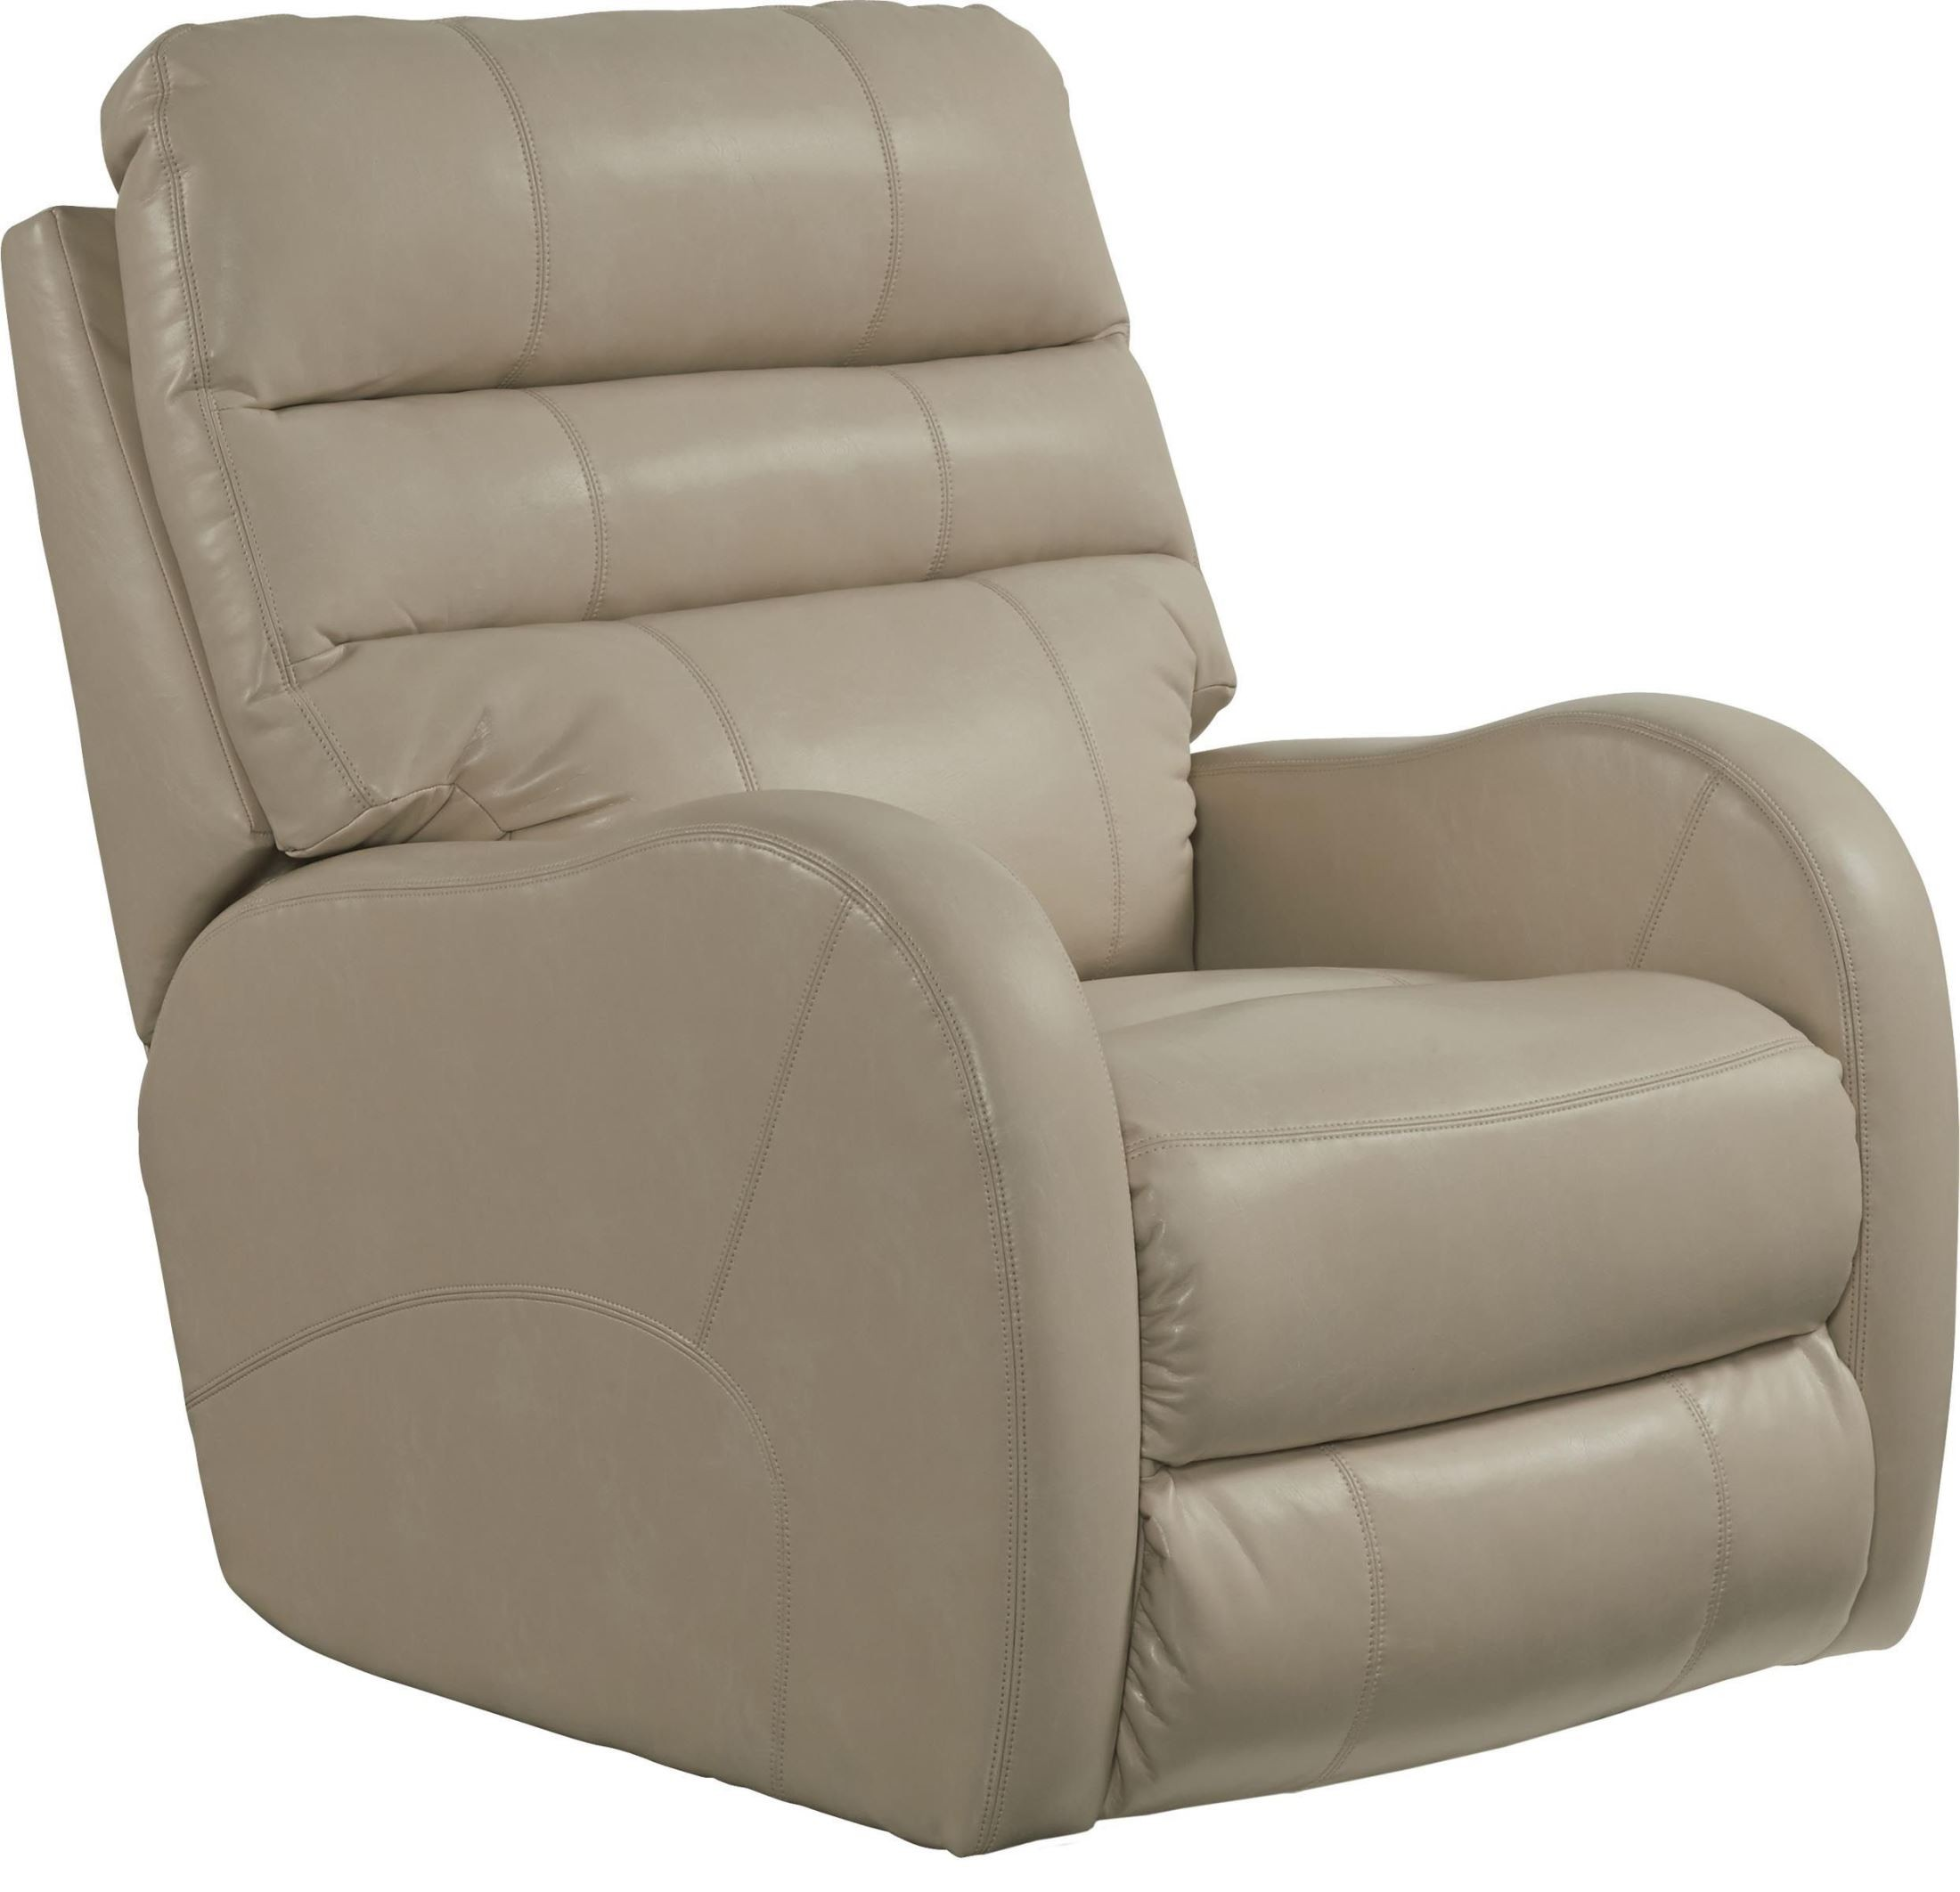 Searcy parchment rocker recliner from catnapper for Catnapper cloud nine chaise recliner